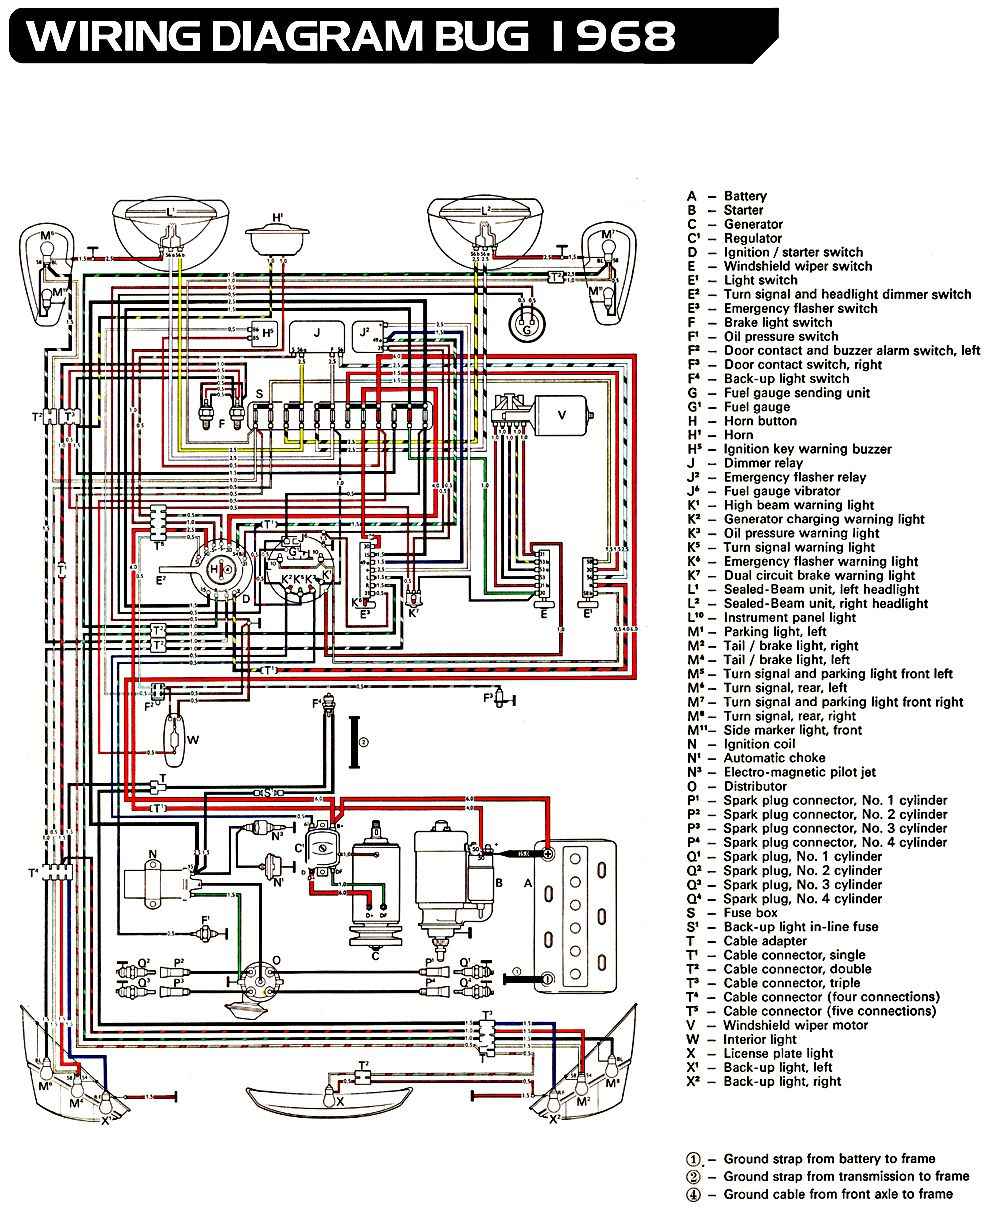 3a1908112d3826270ed5e3be362292bf vw bug ignition wiring diagram 73 vw wiring diagram free 1973 vw wiring diagram at eliteediting.co